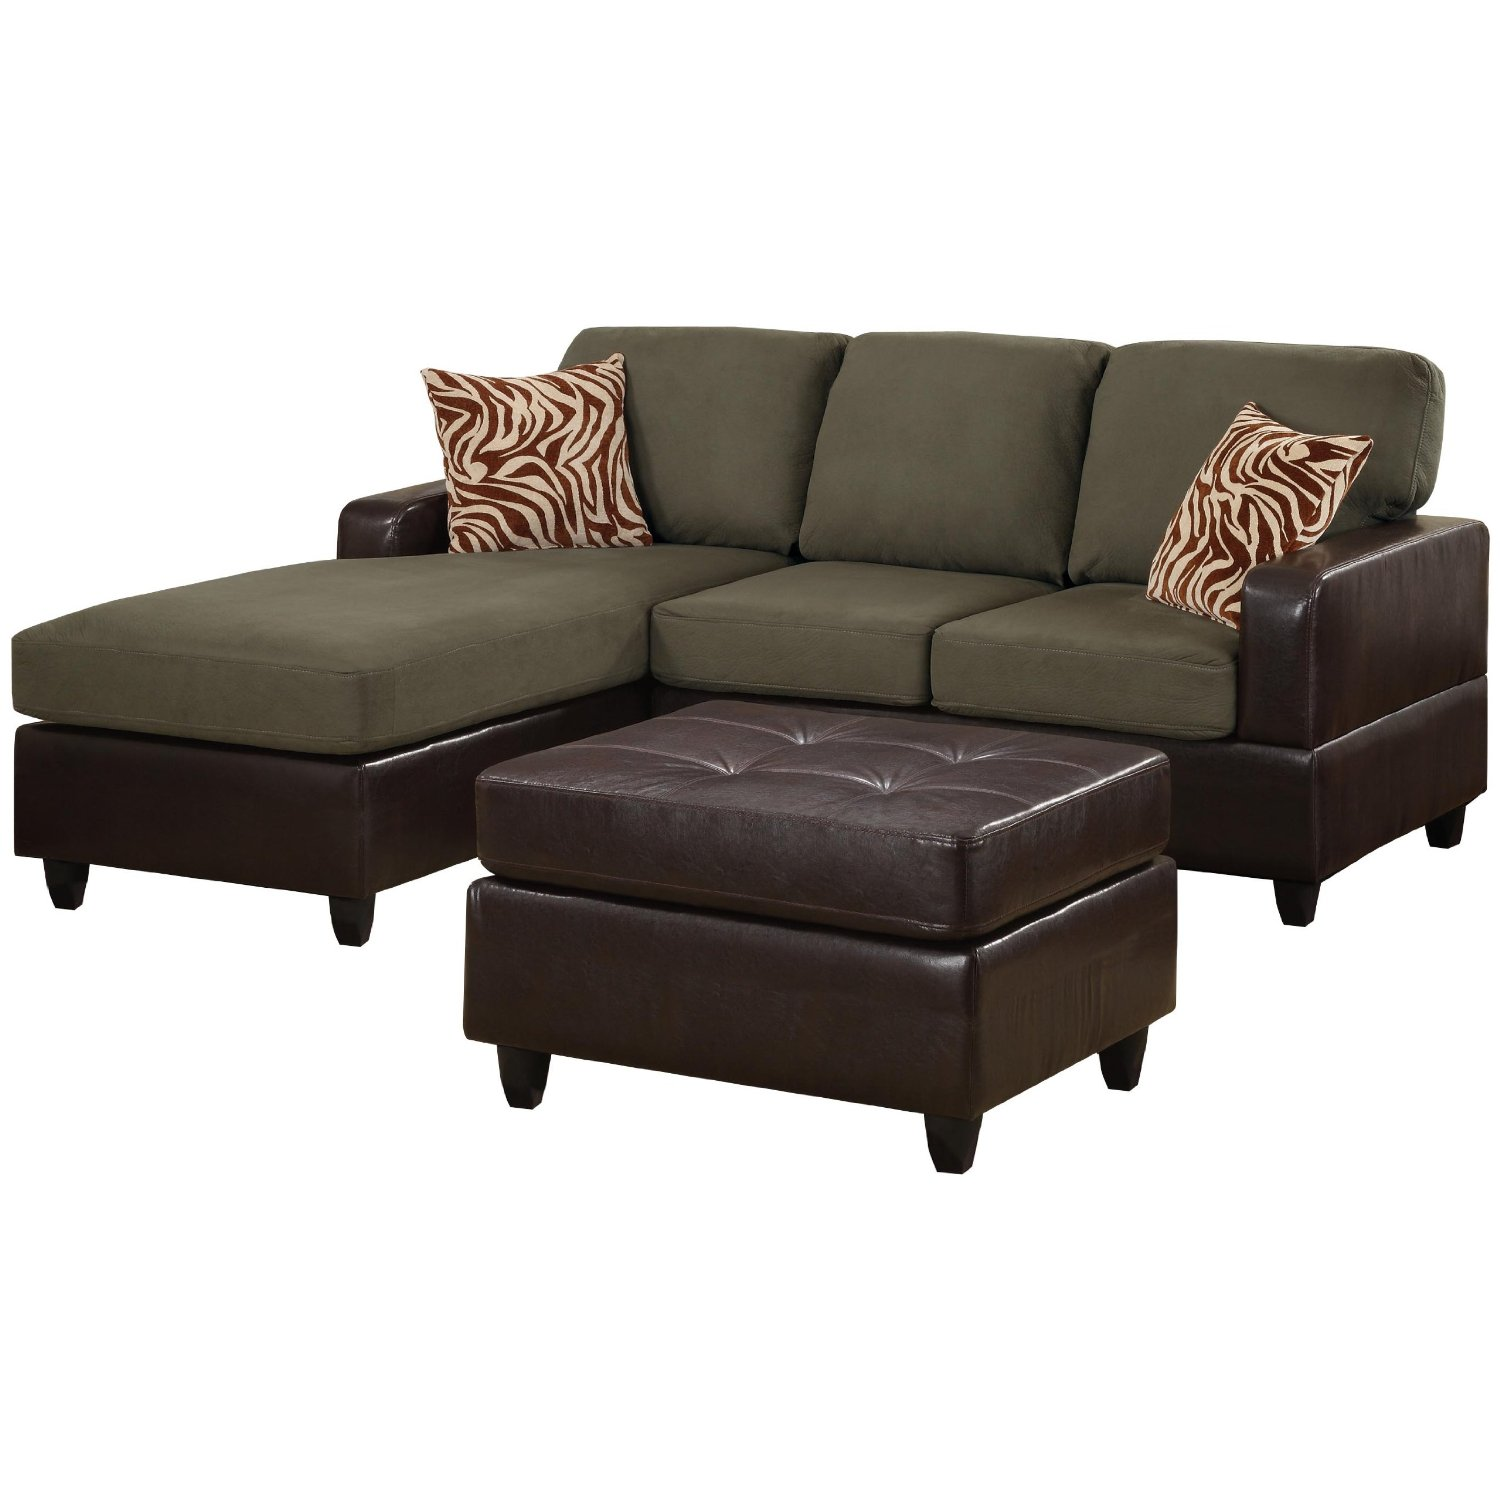 Sectional sofas for small spaces for 3 piece small sectional sofa